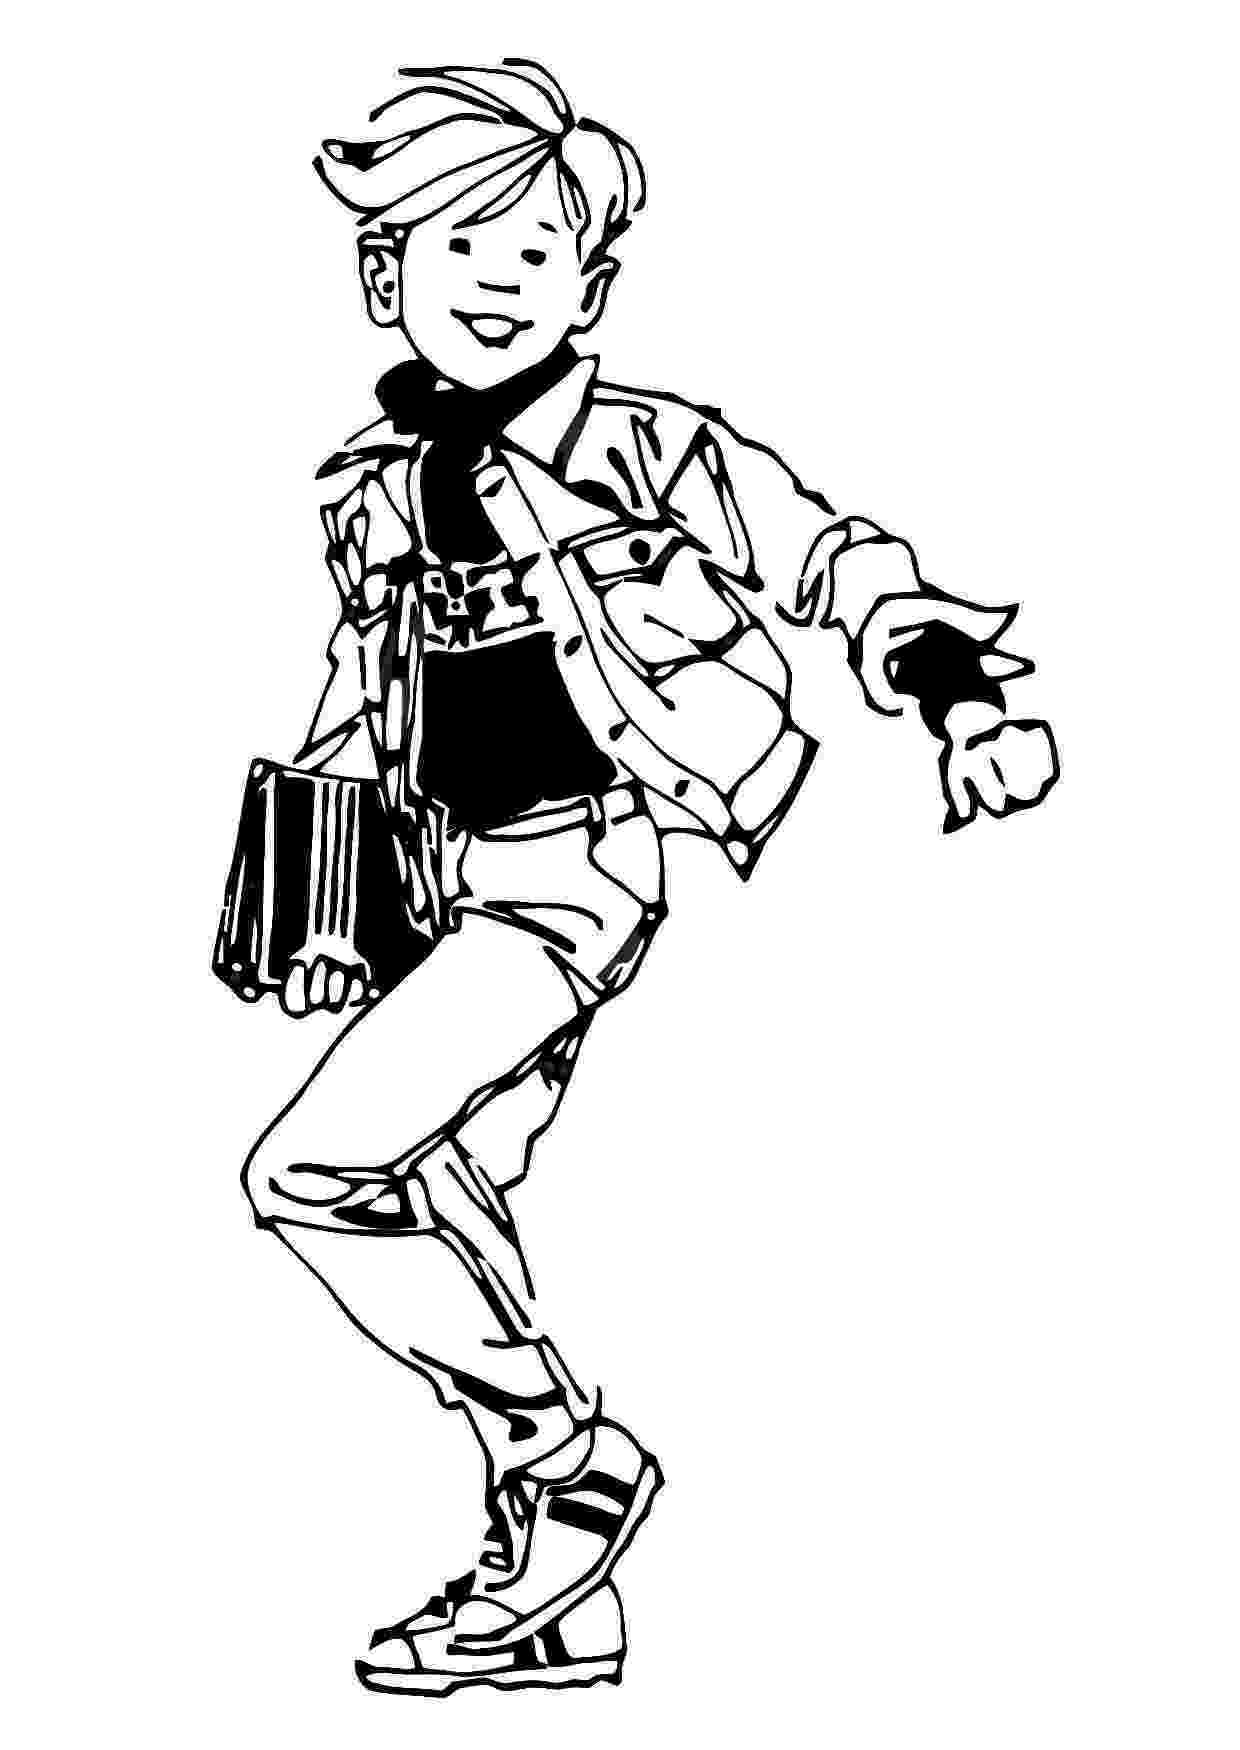 student coloring page students reading free coloring pages coloring pages page coloring student